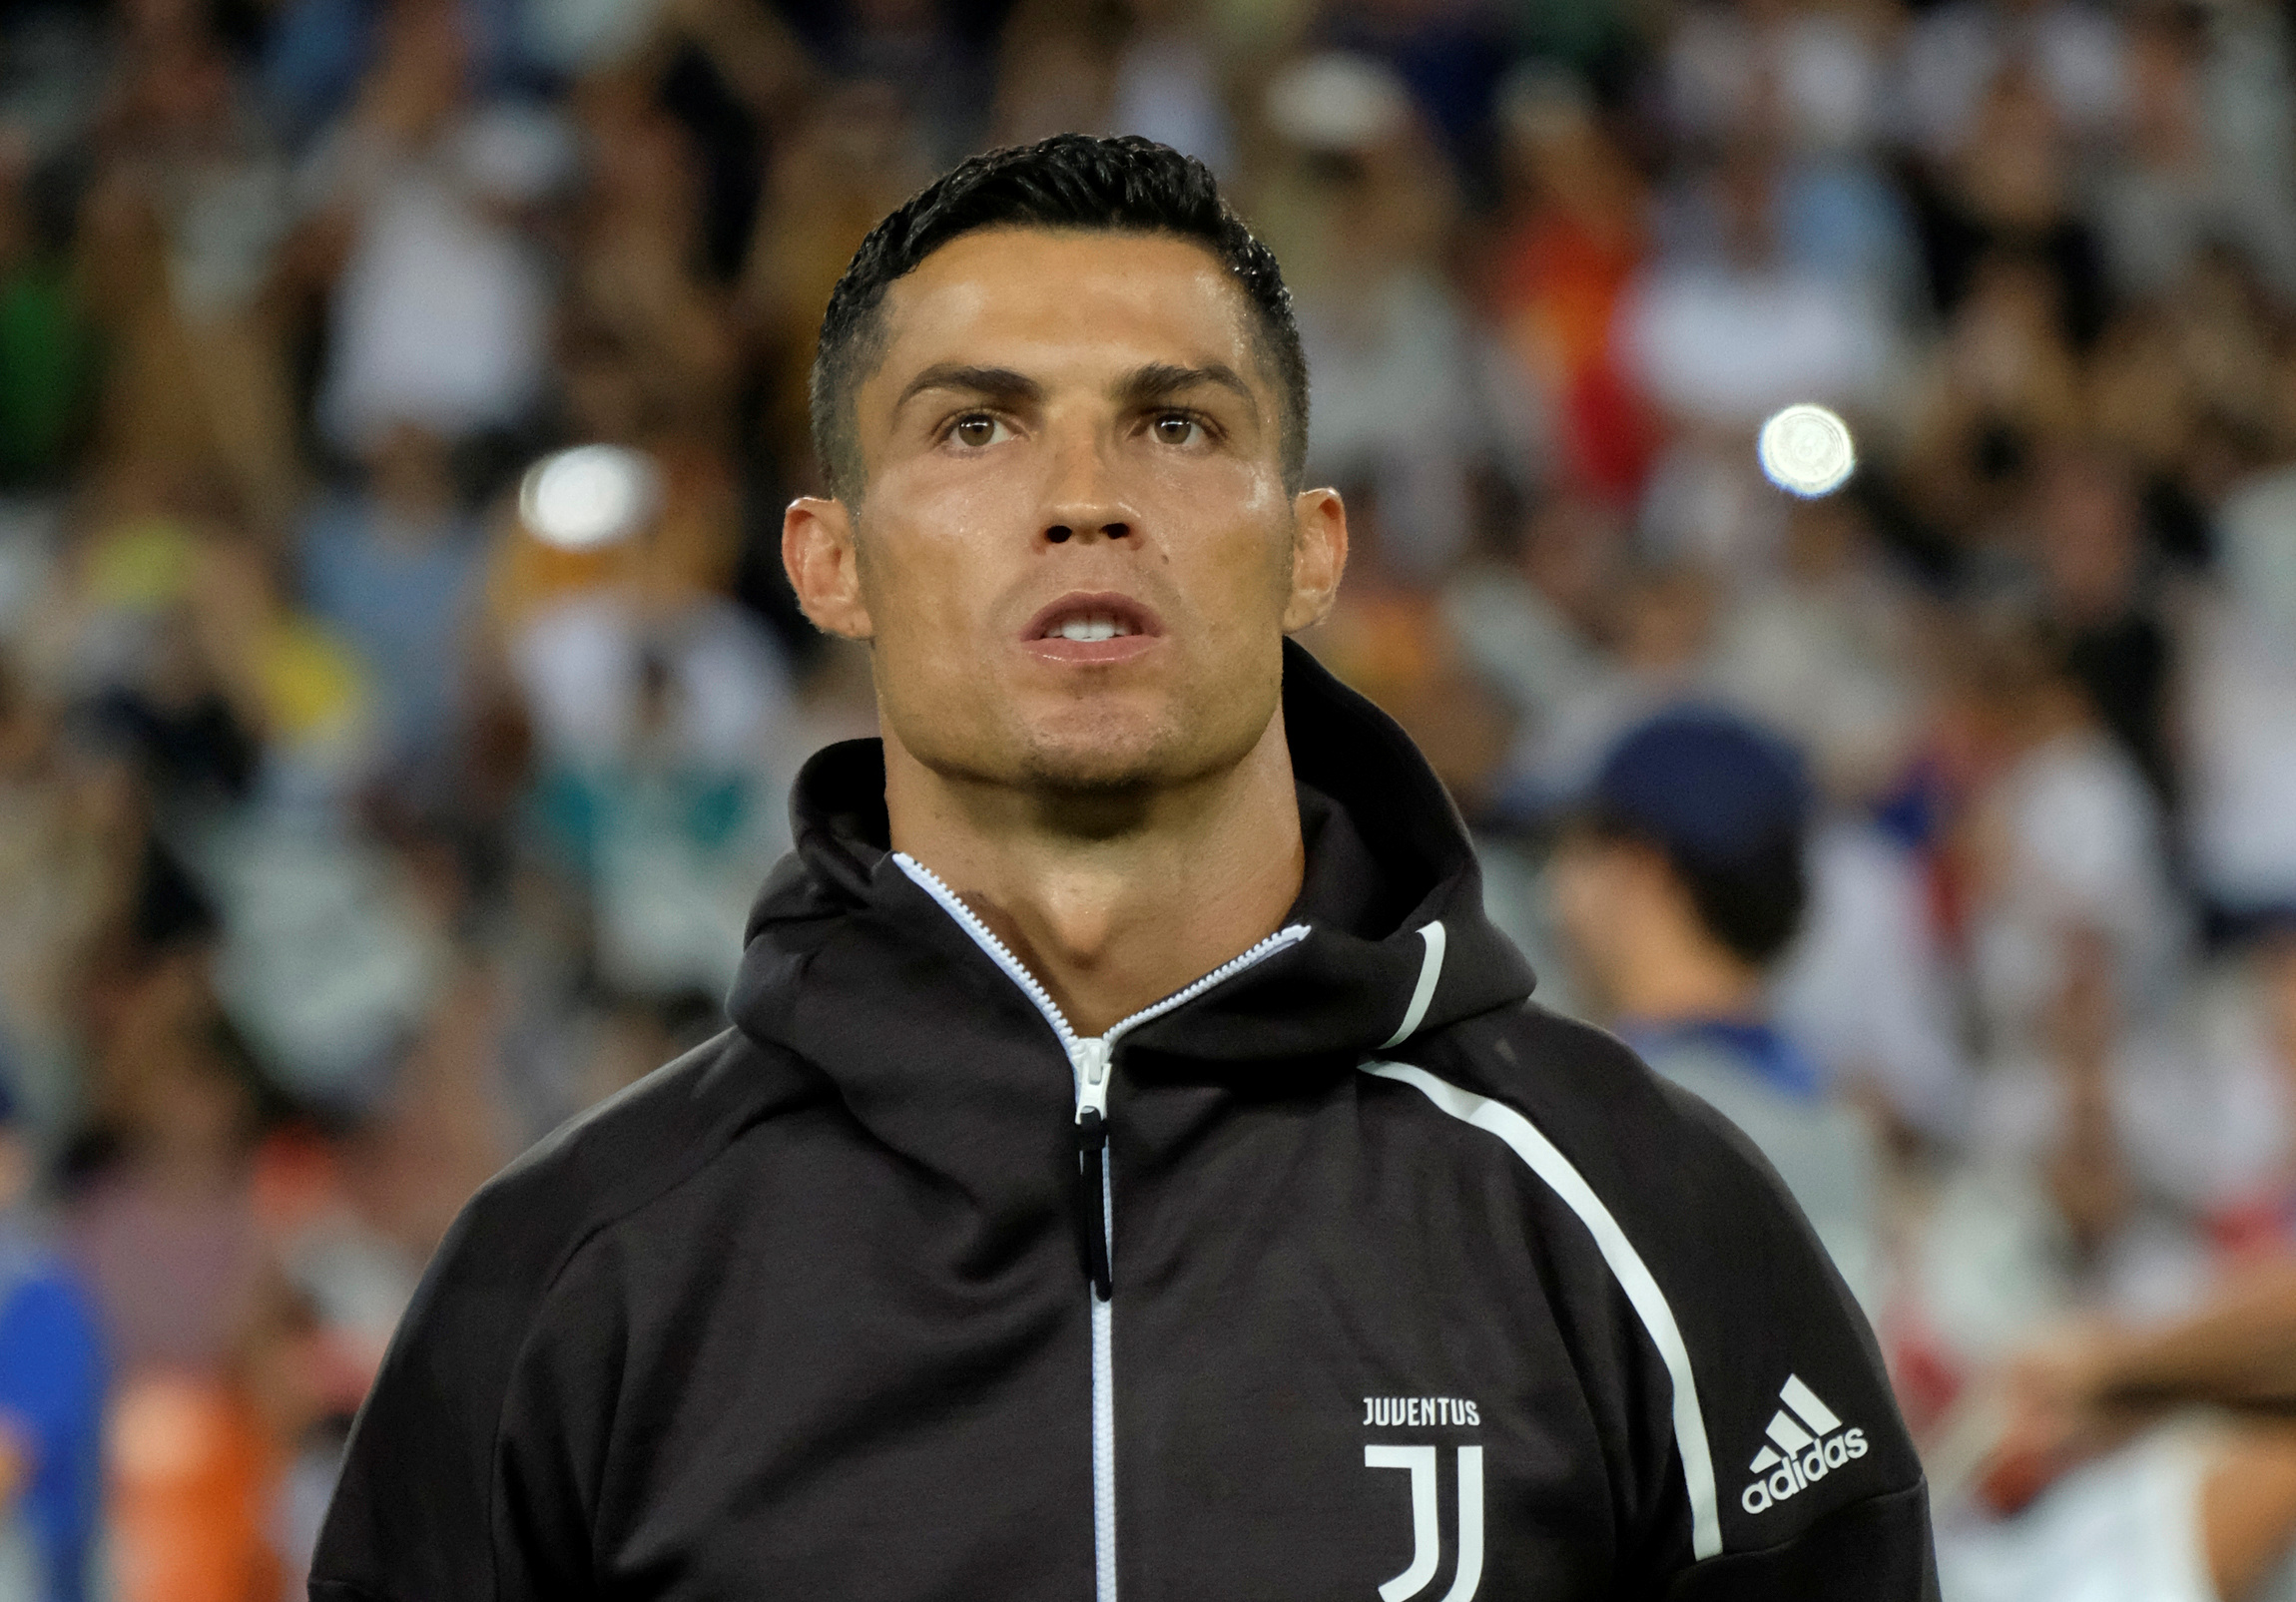 buy online f2e81 10cc0 Soccer star Cristiano Ronaldo will not face rape charge in ...